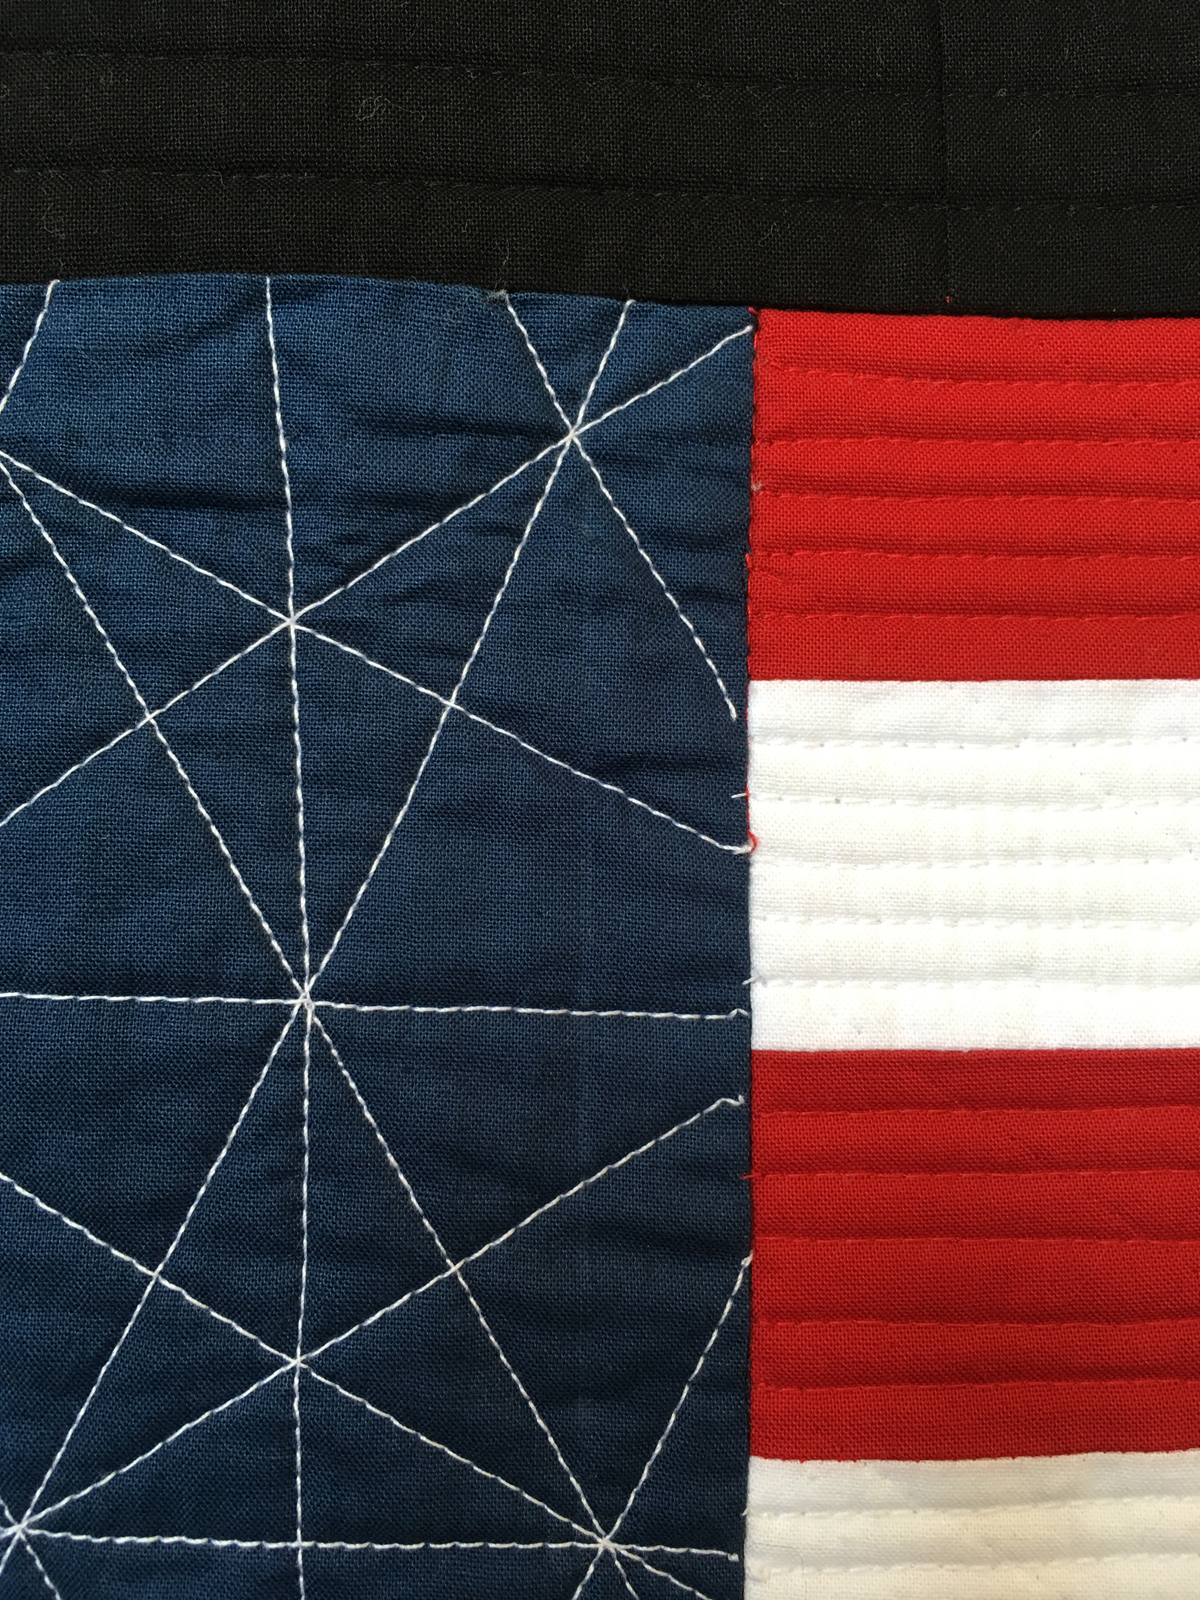 15 Of My Favorite Modern Quilts With Descriptions From The